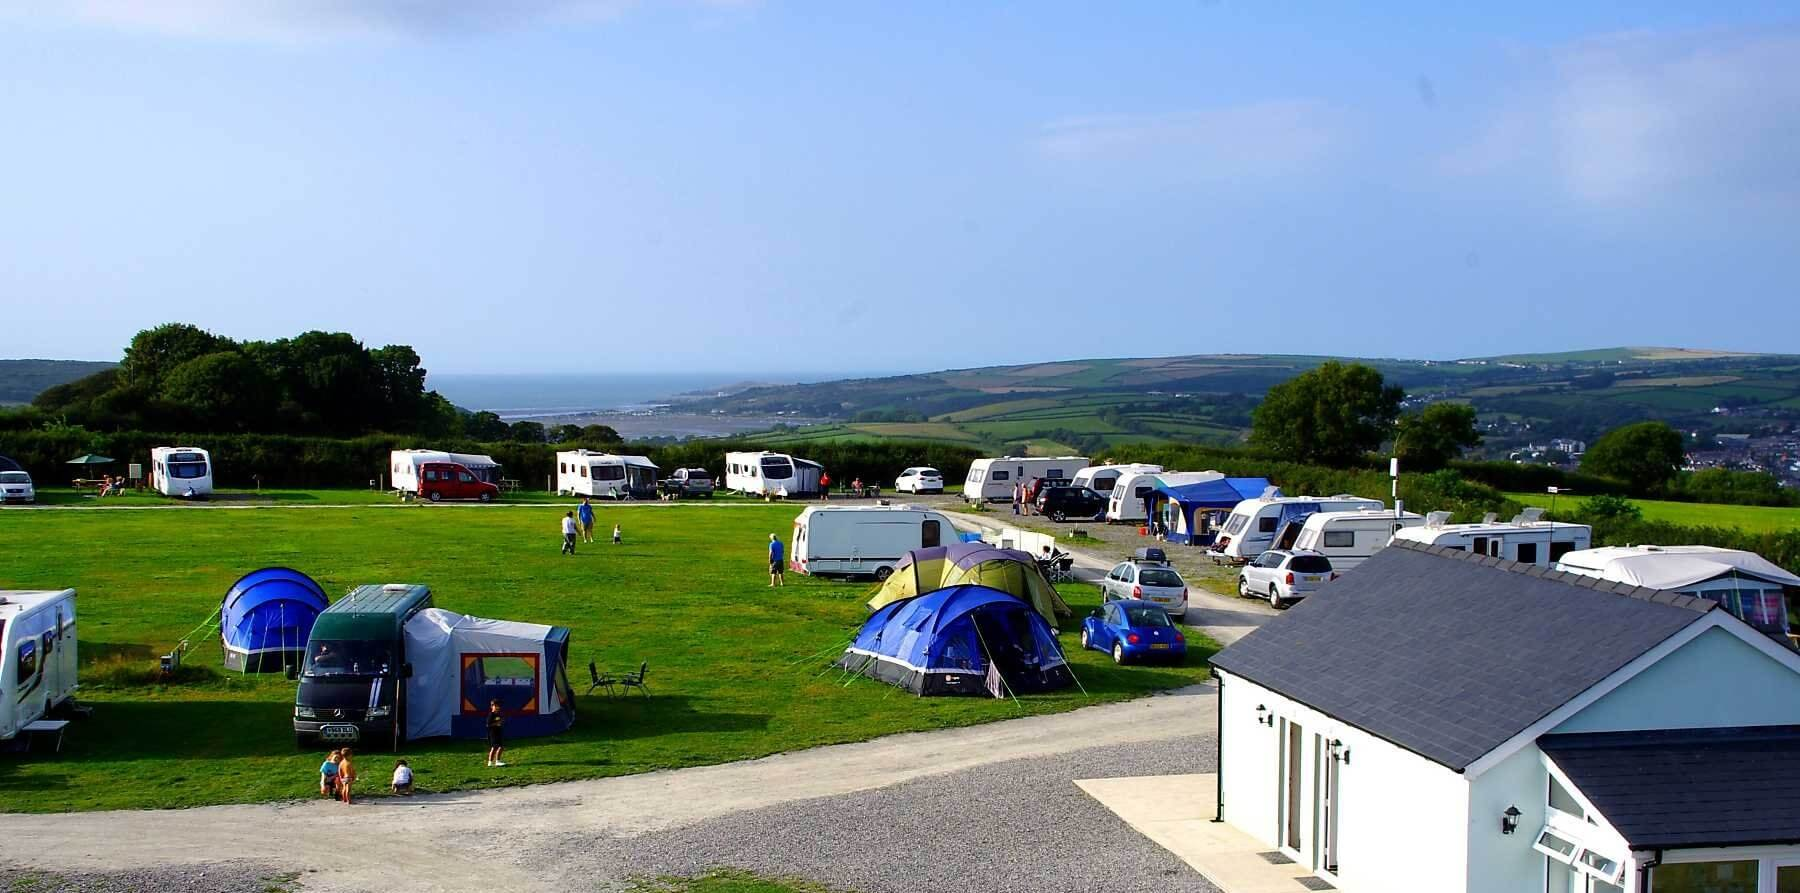 Cardigan Camping And Touring Caravan Site, Cardigan, Ceredigion | Head Outside